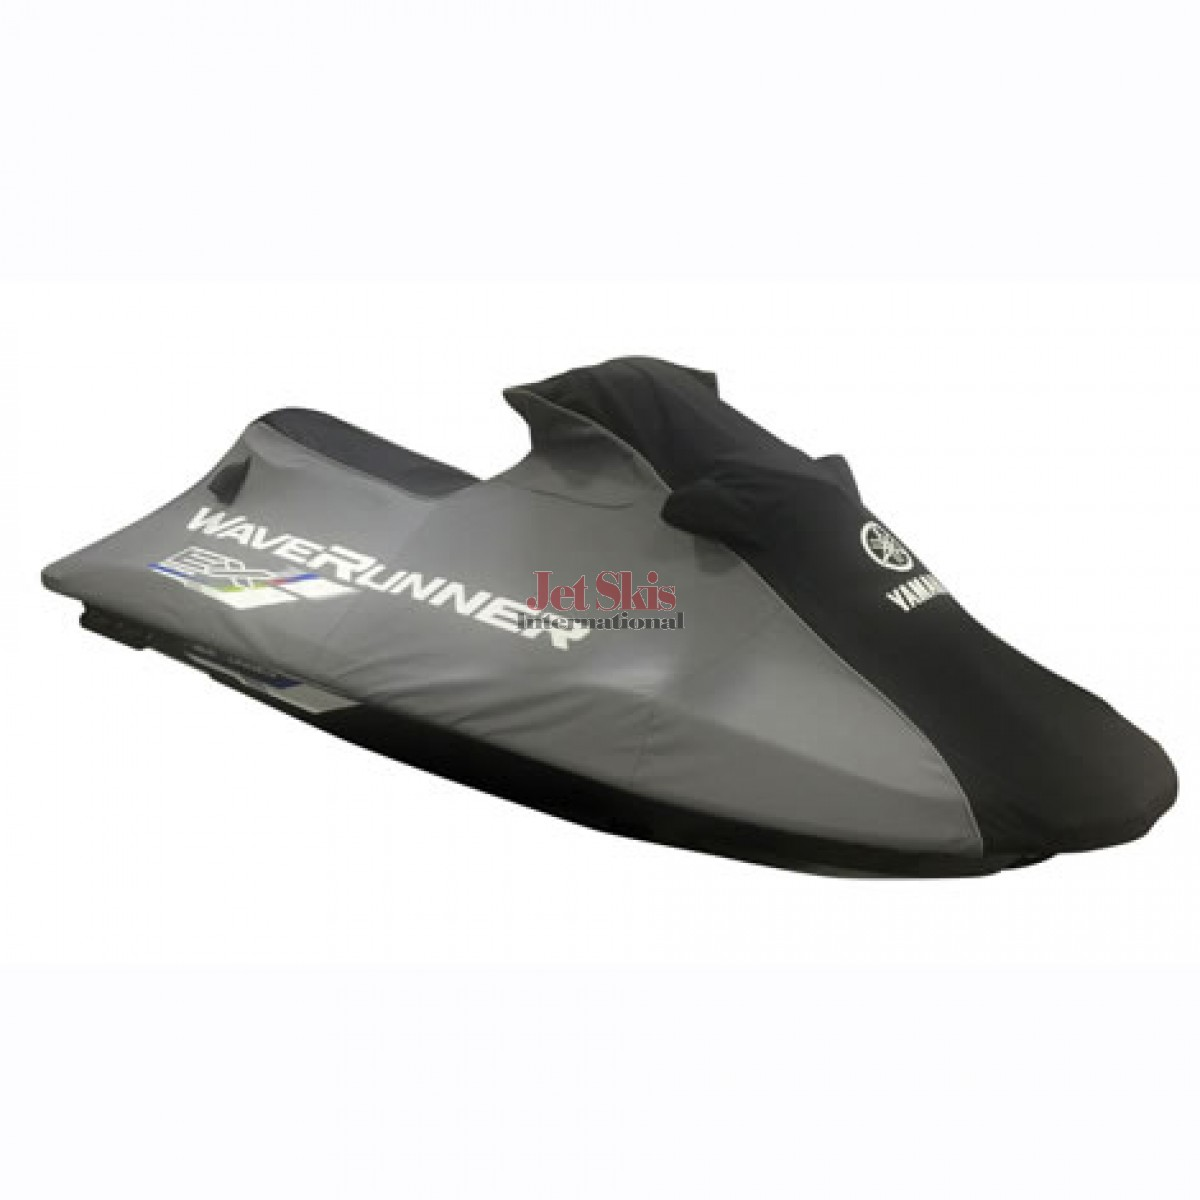 Yamaha waverunner ex deluxe ex sport storage cover jet for Yamaha jet ski covers